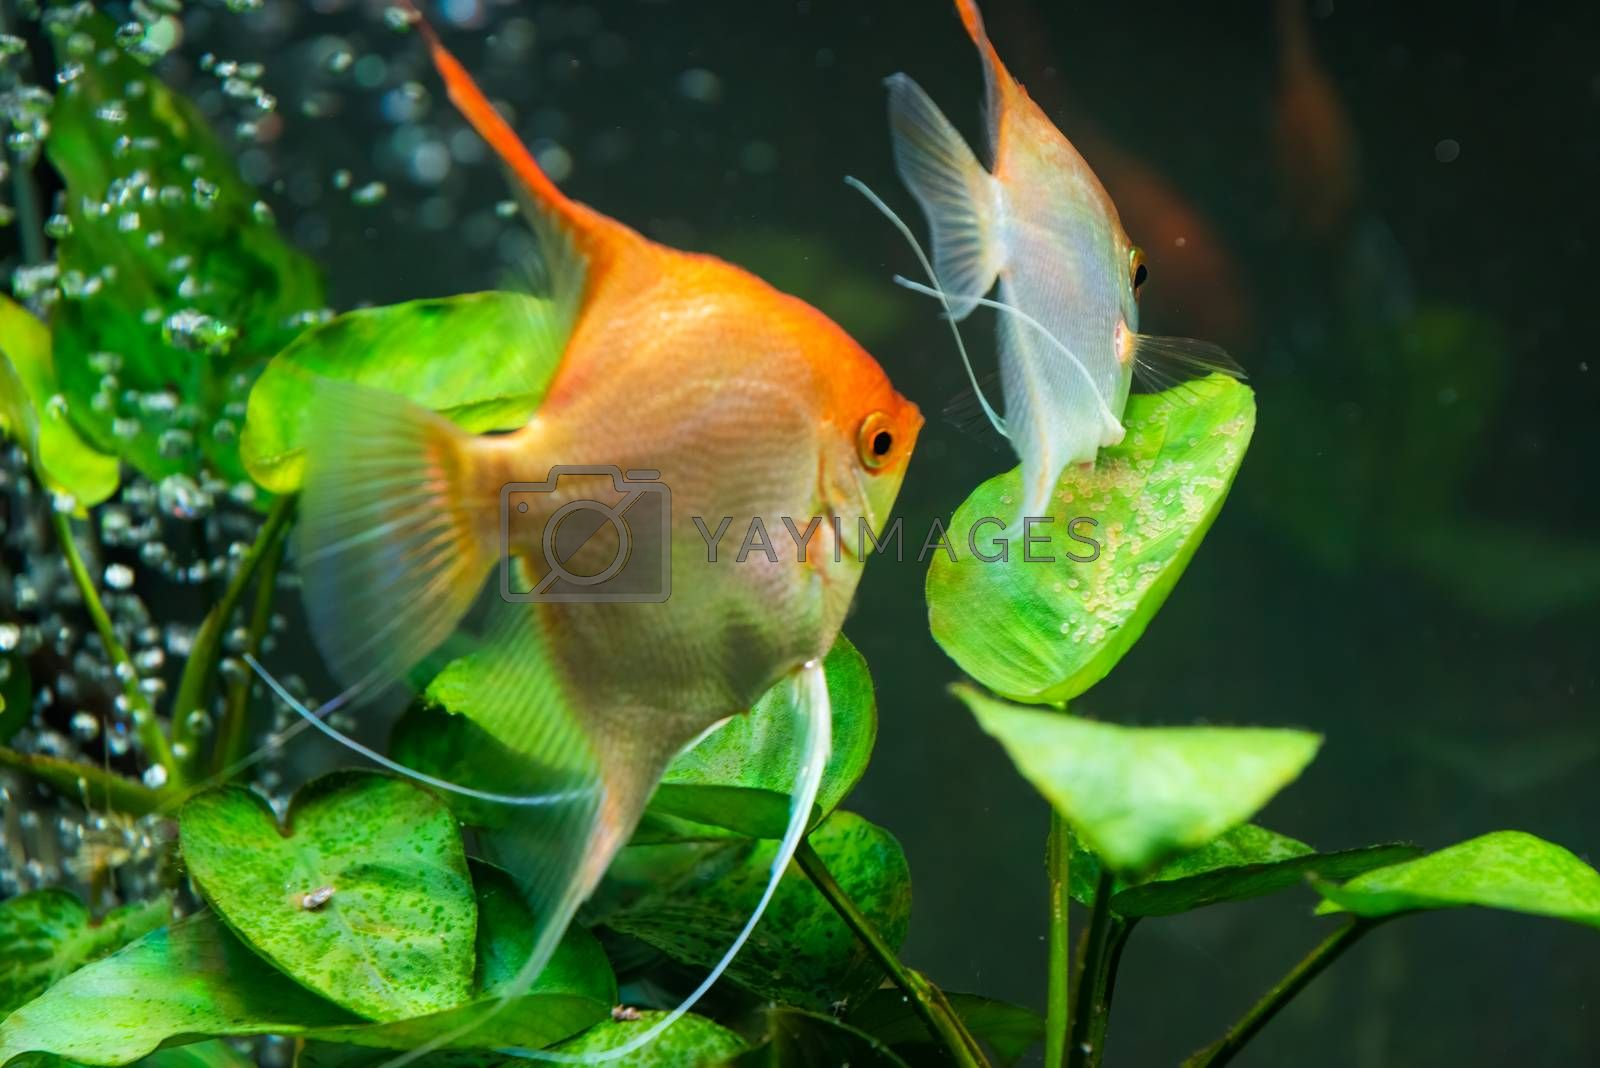 Pairof Gold Pterophyllum Scalare guarding eggs. Roe on the leaf by Madphotos